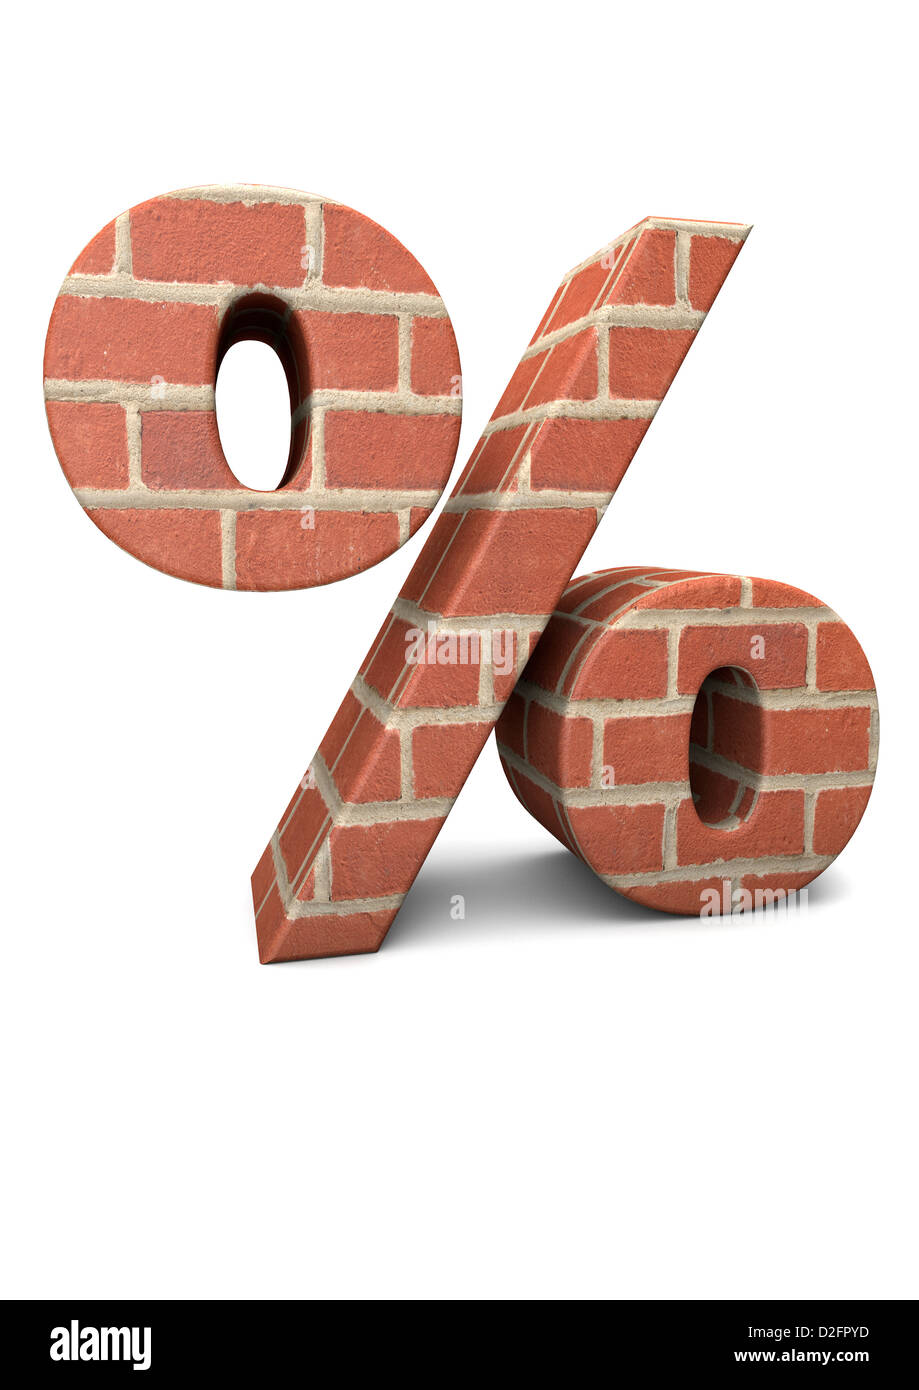 Percent symbol built from bricks isolated on white background - inflation / interest rates / housing concept - Stock Image